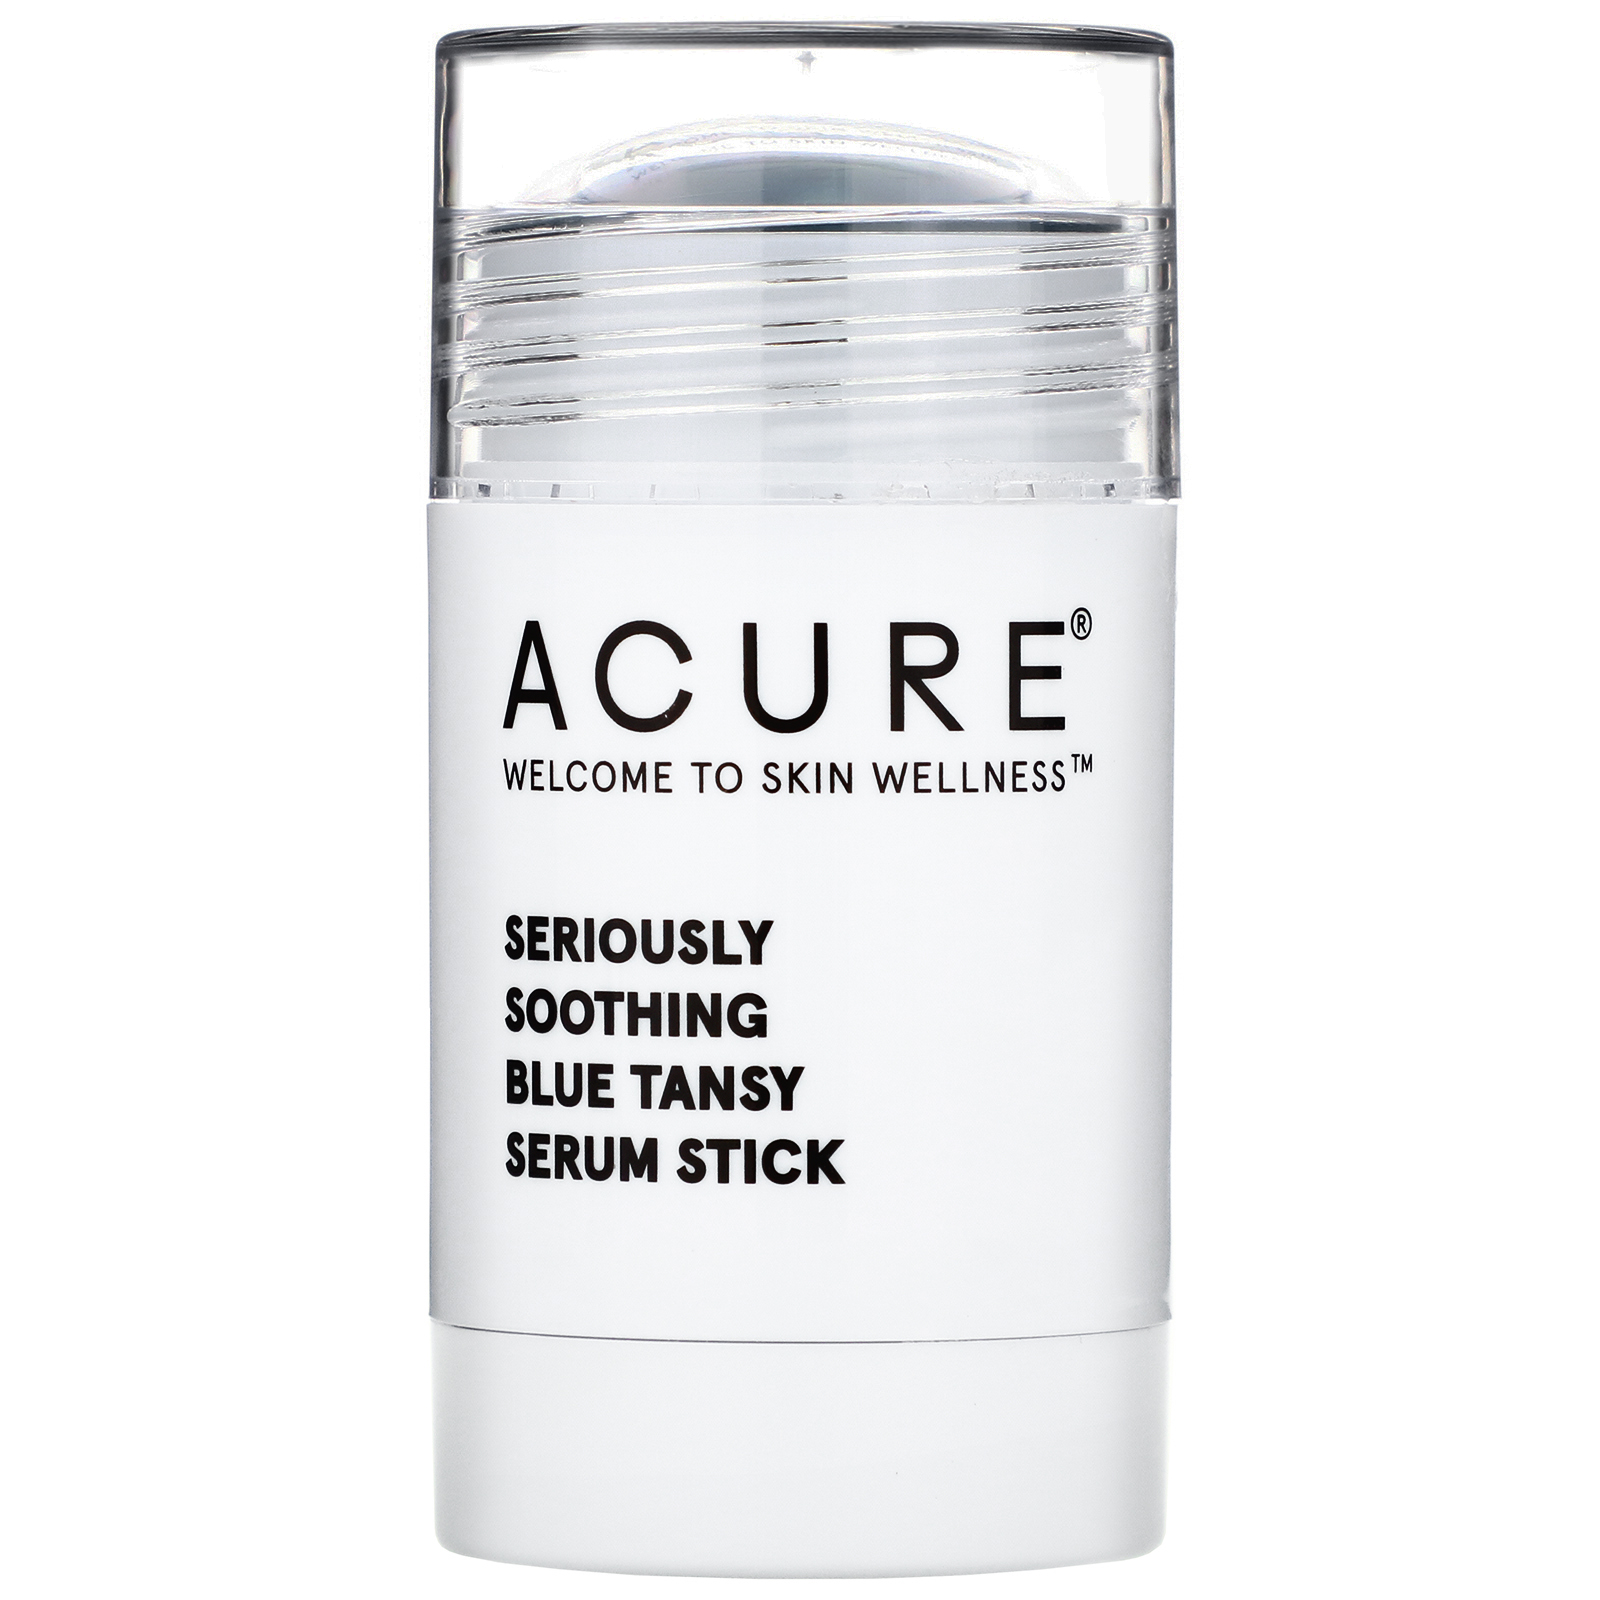 Acure, Seriously Soothing, Serum Stick, 1 Oz (28.34 G)